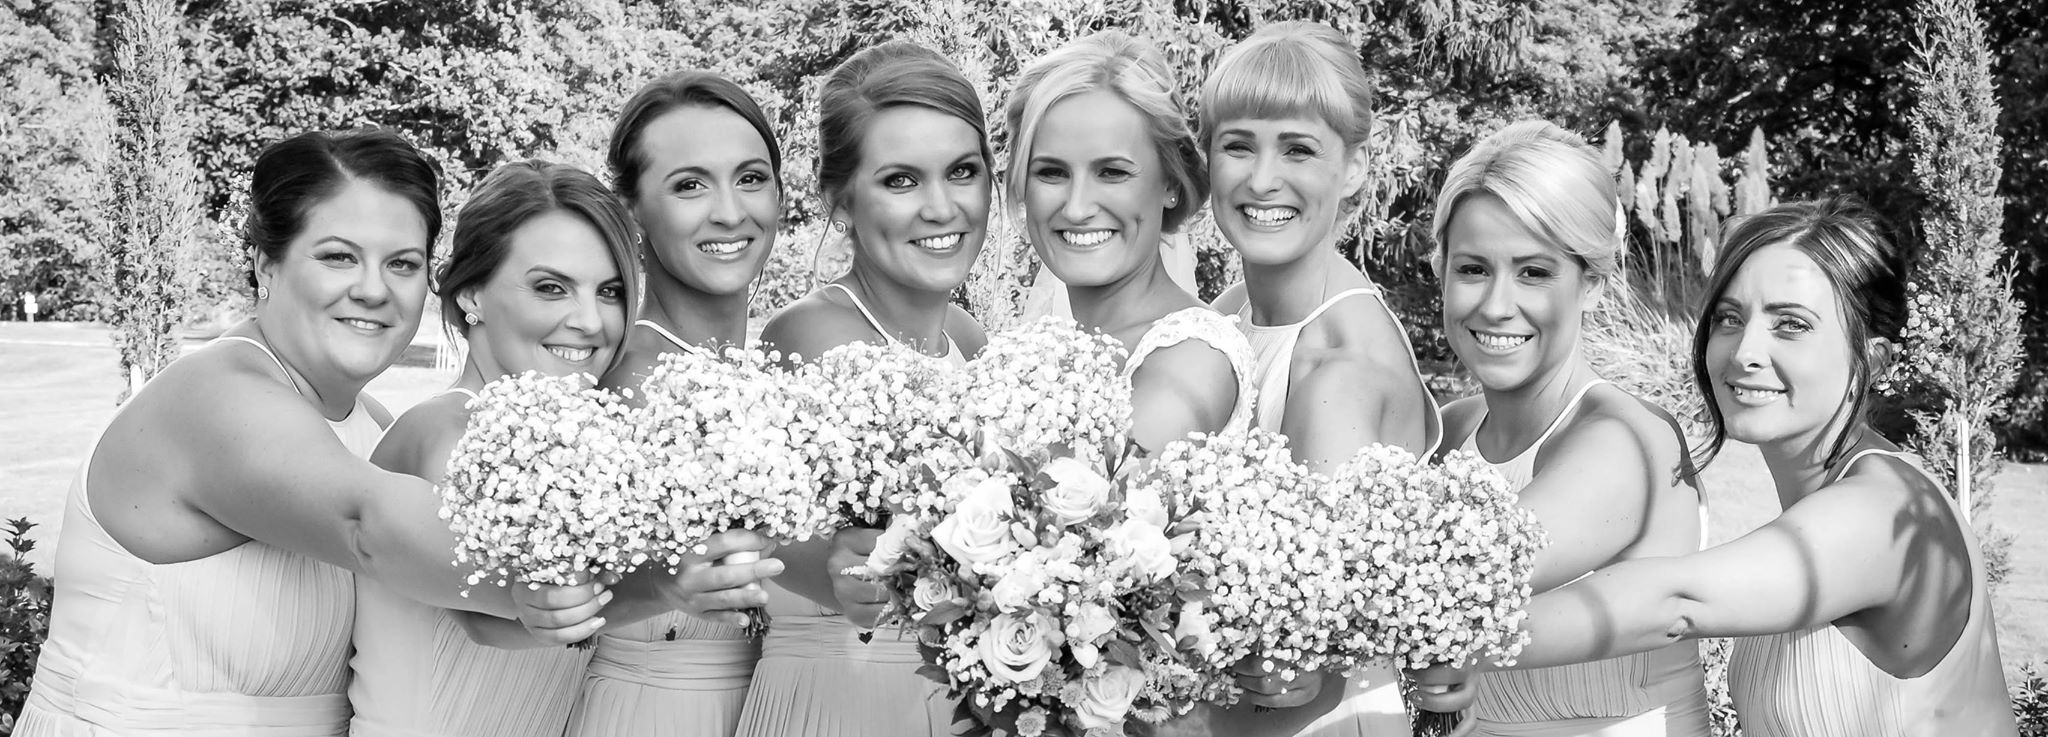 Wedding Photography - Lorraine Morgan Photography